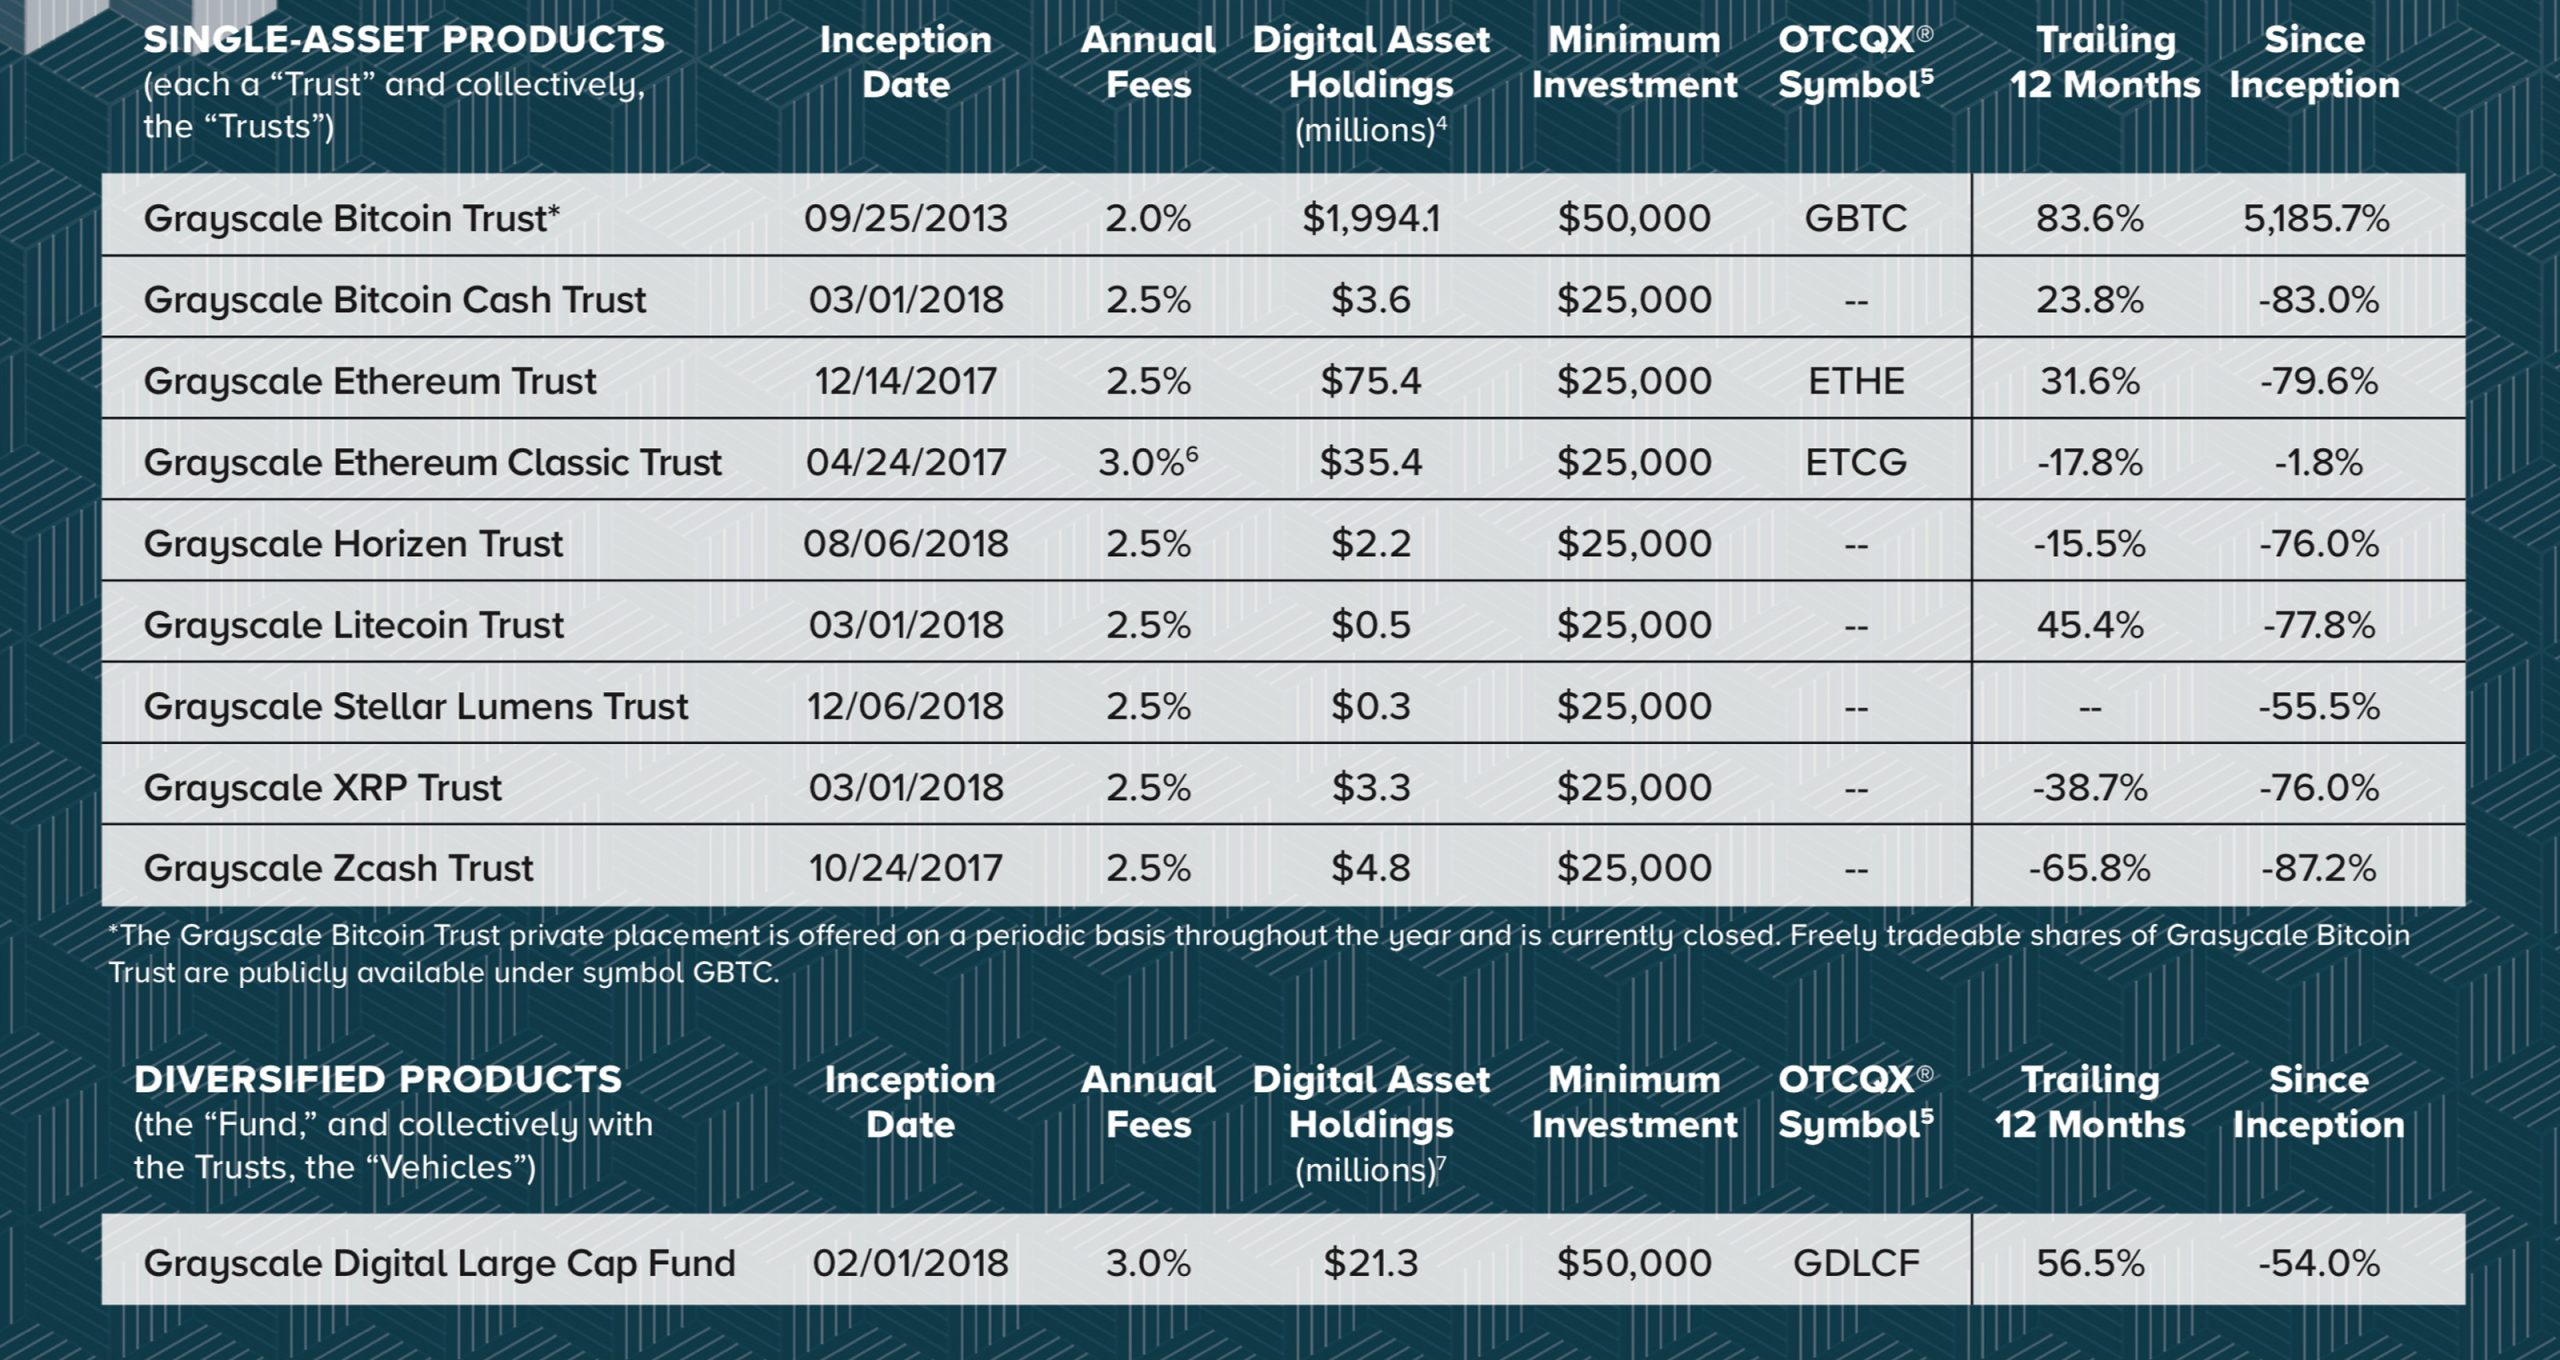 Mainstream Investment Vehicles Tied to Cryptocurrencies Grow Exponentially